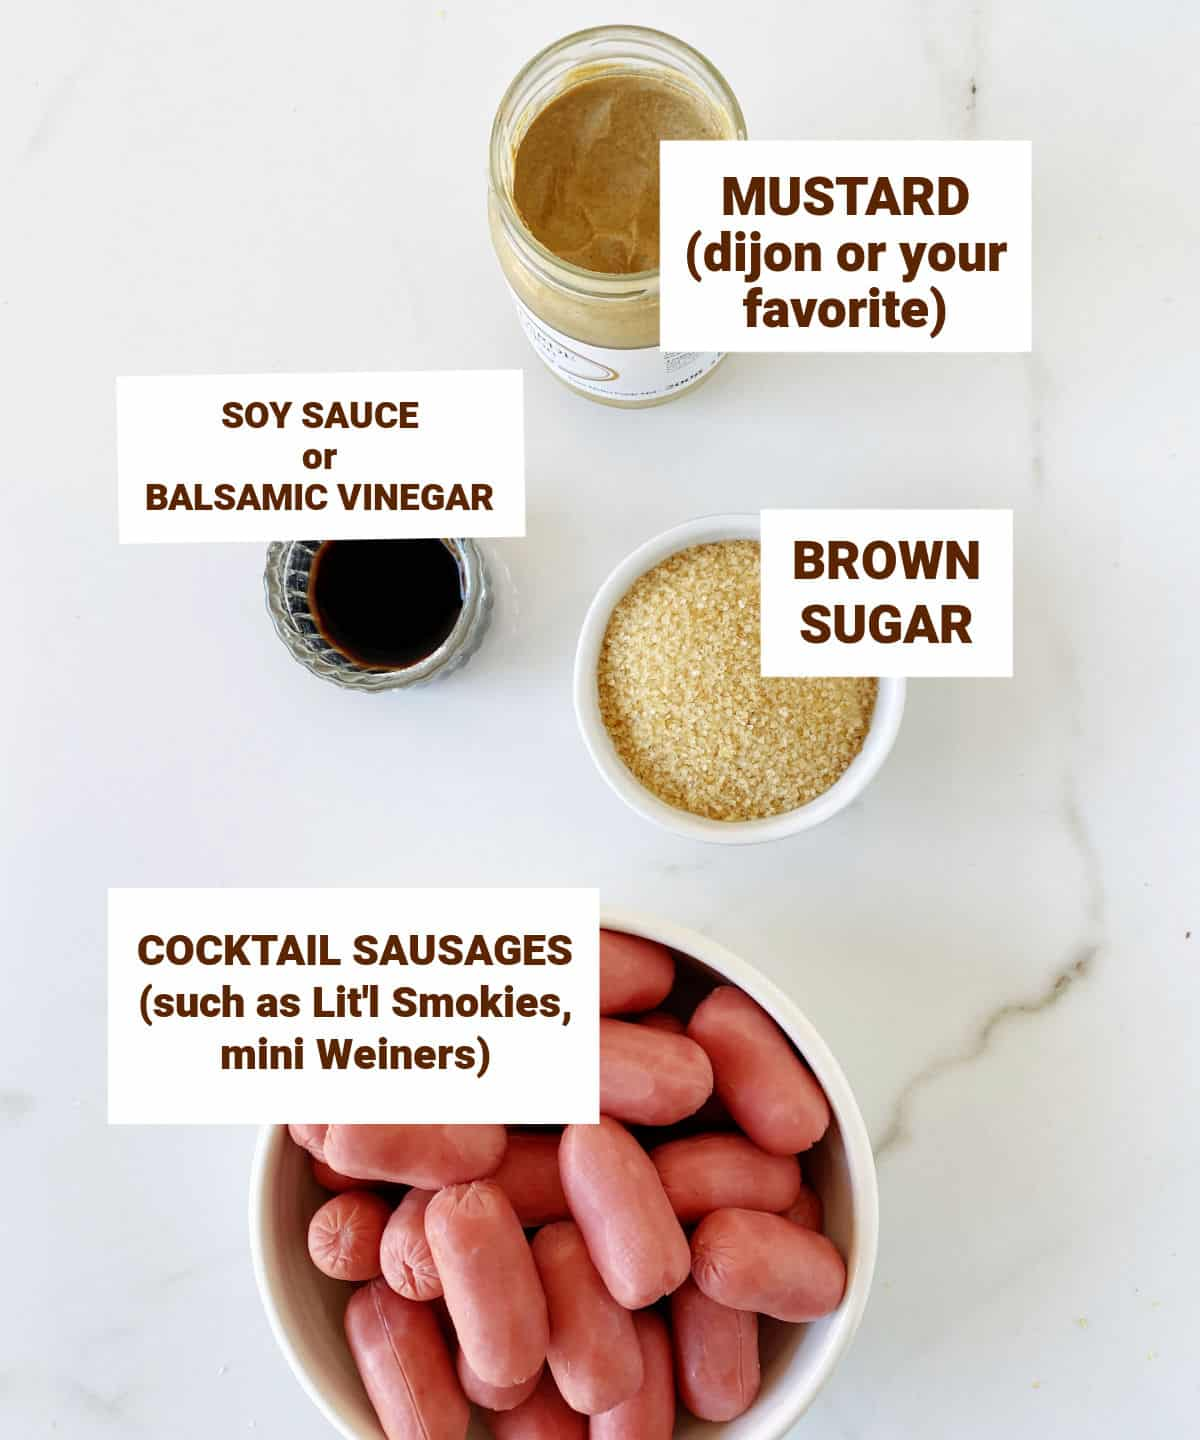 White marble surface with 4 bowls with ingredeints for cocktail sausages including mustard, brown sugar and soy sauce